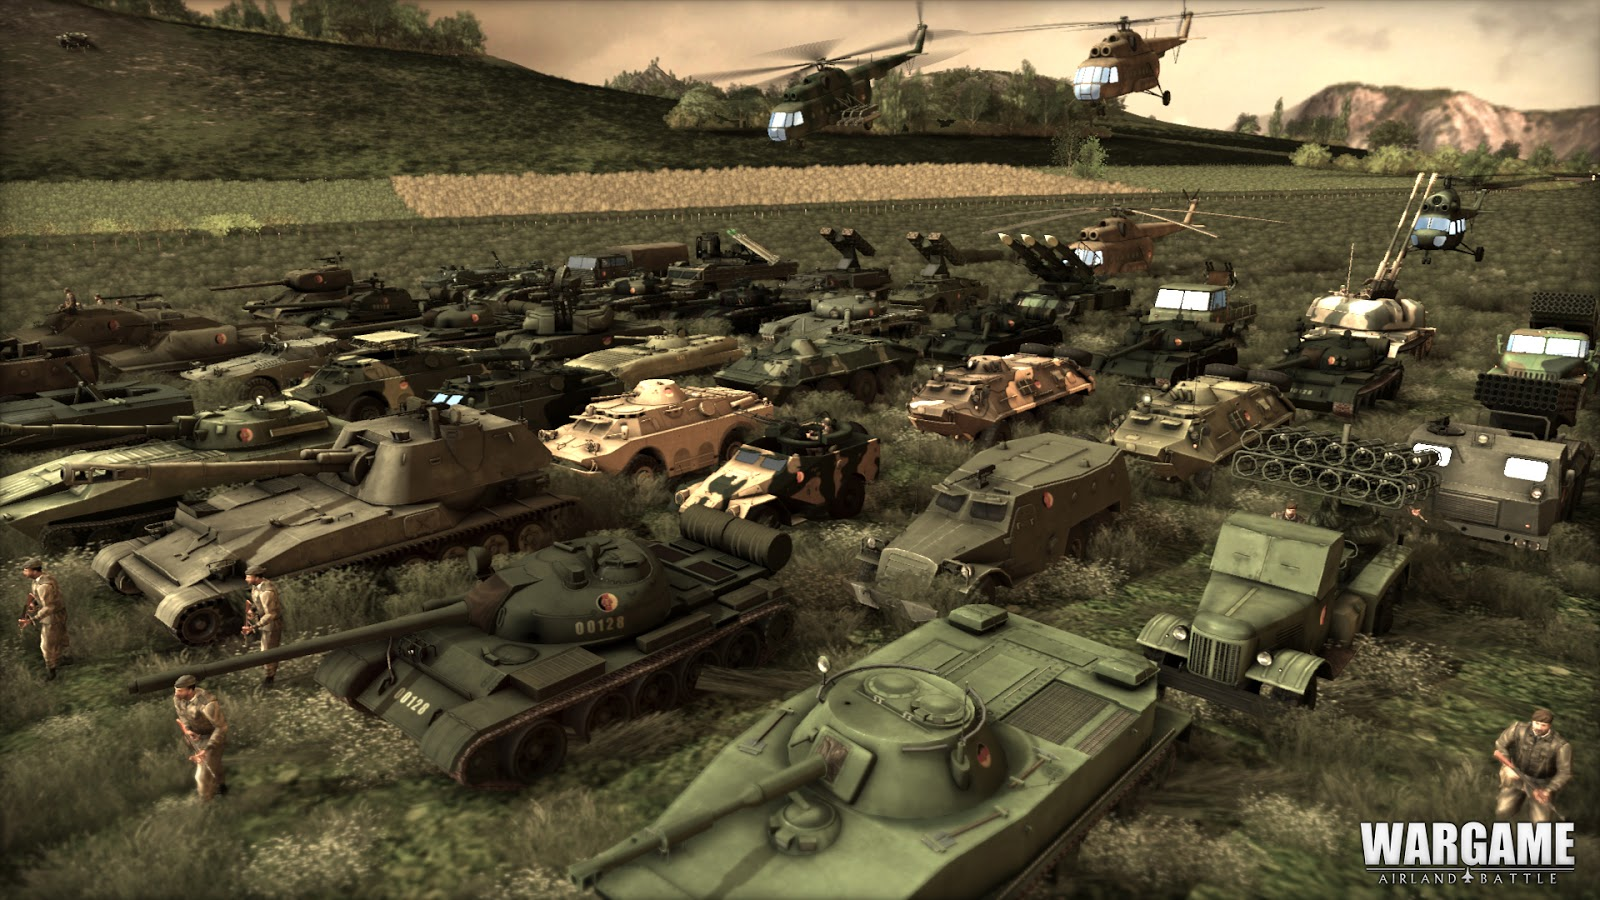 wargame airland battle has the charm of an addon but at